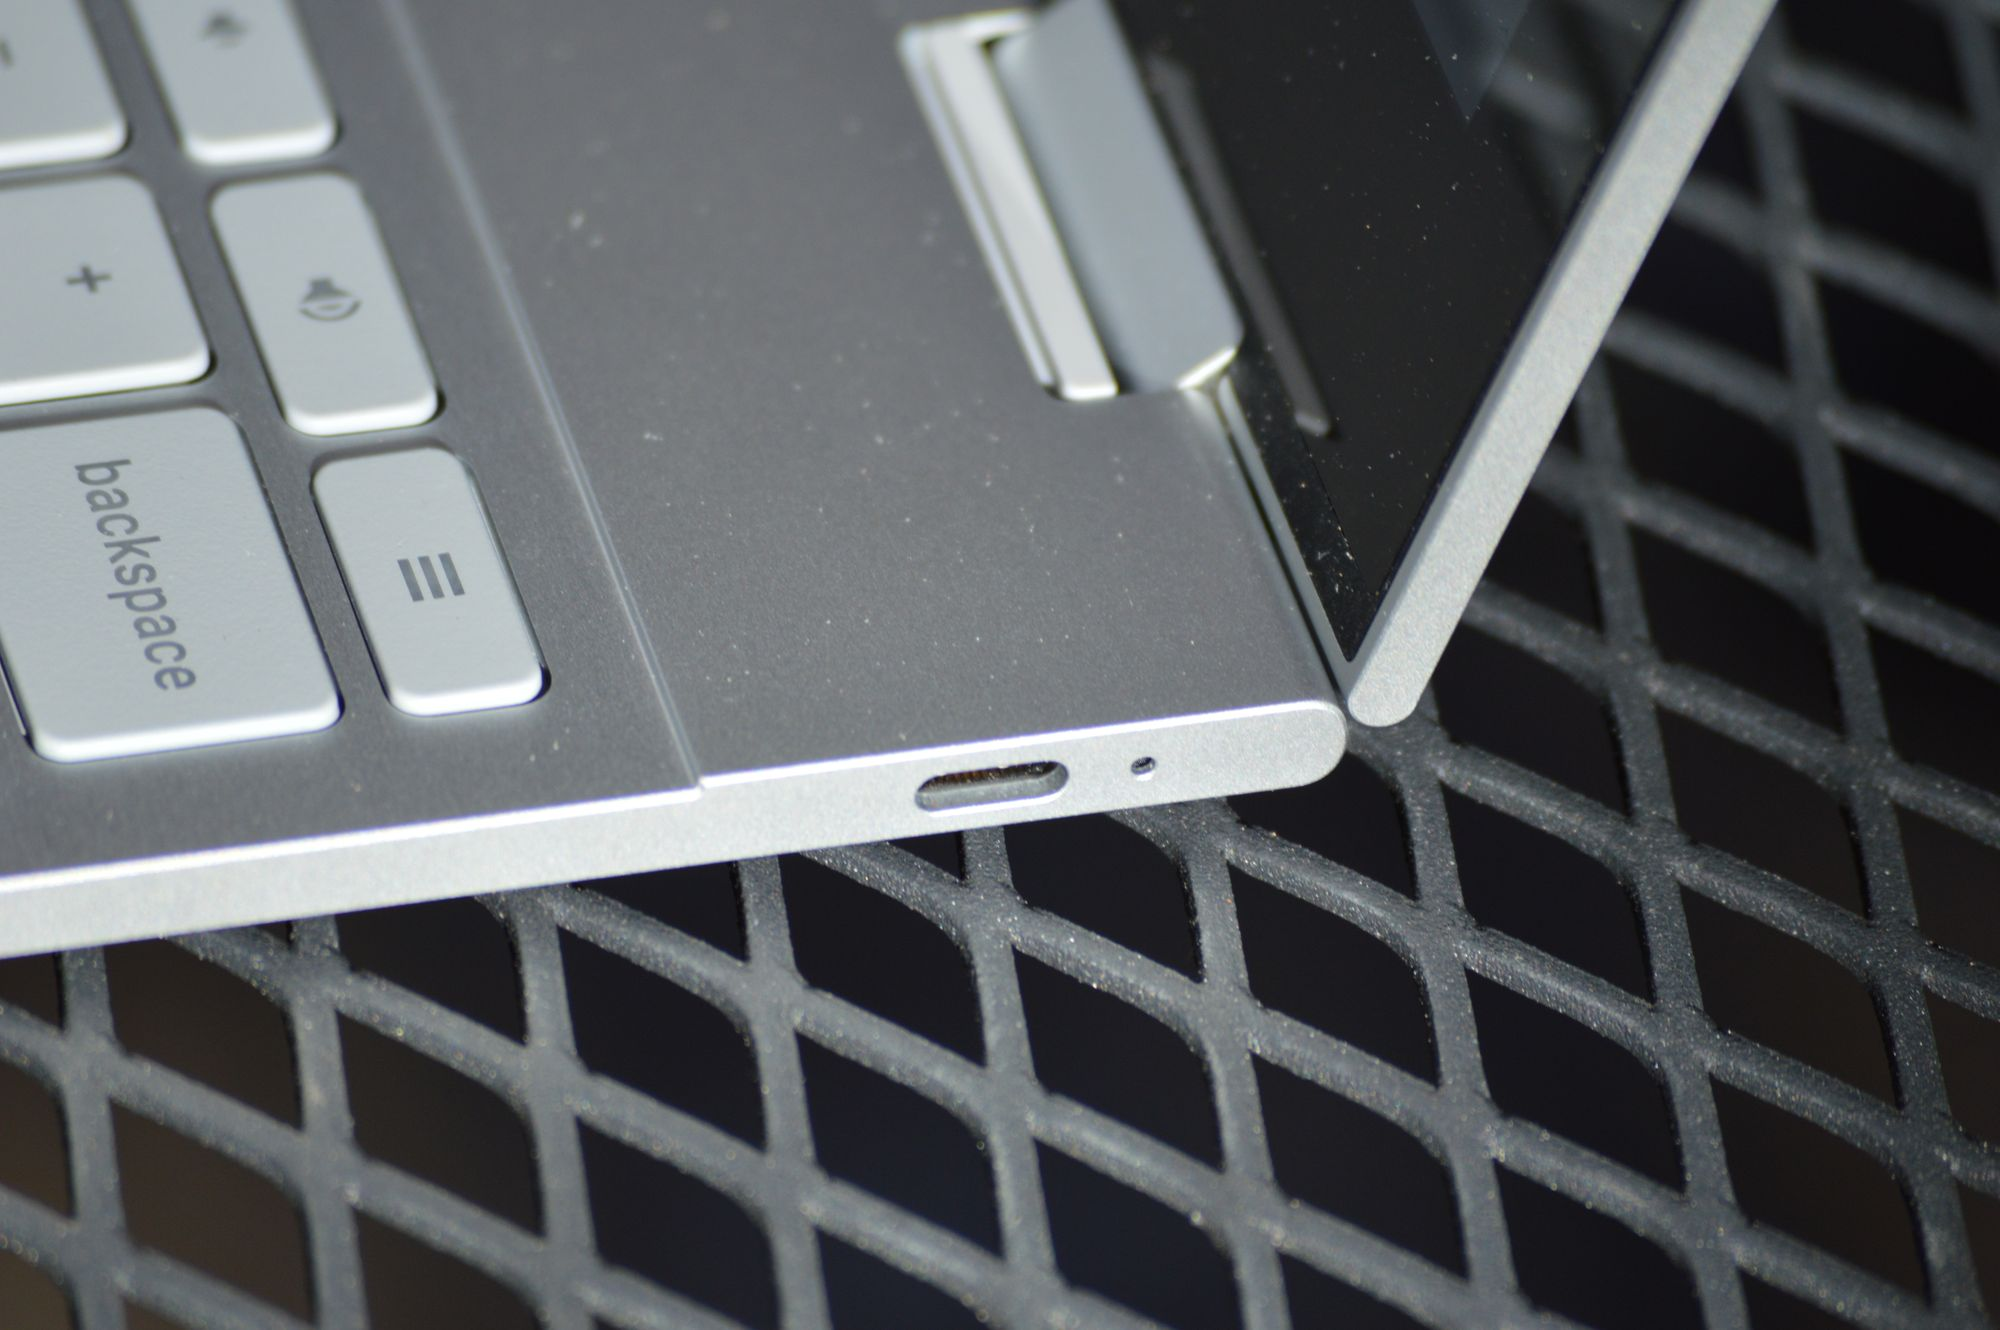 A Review of the Google Pixelbook for Coding and Development